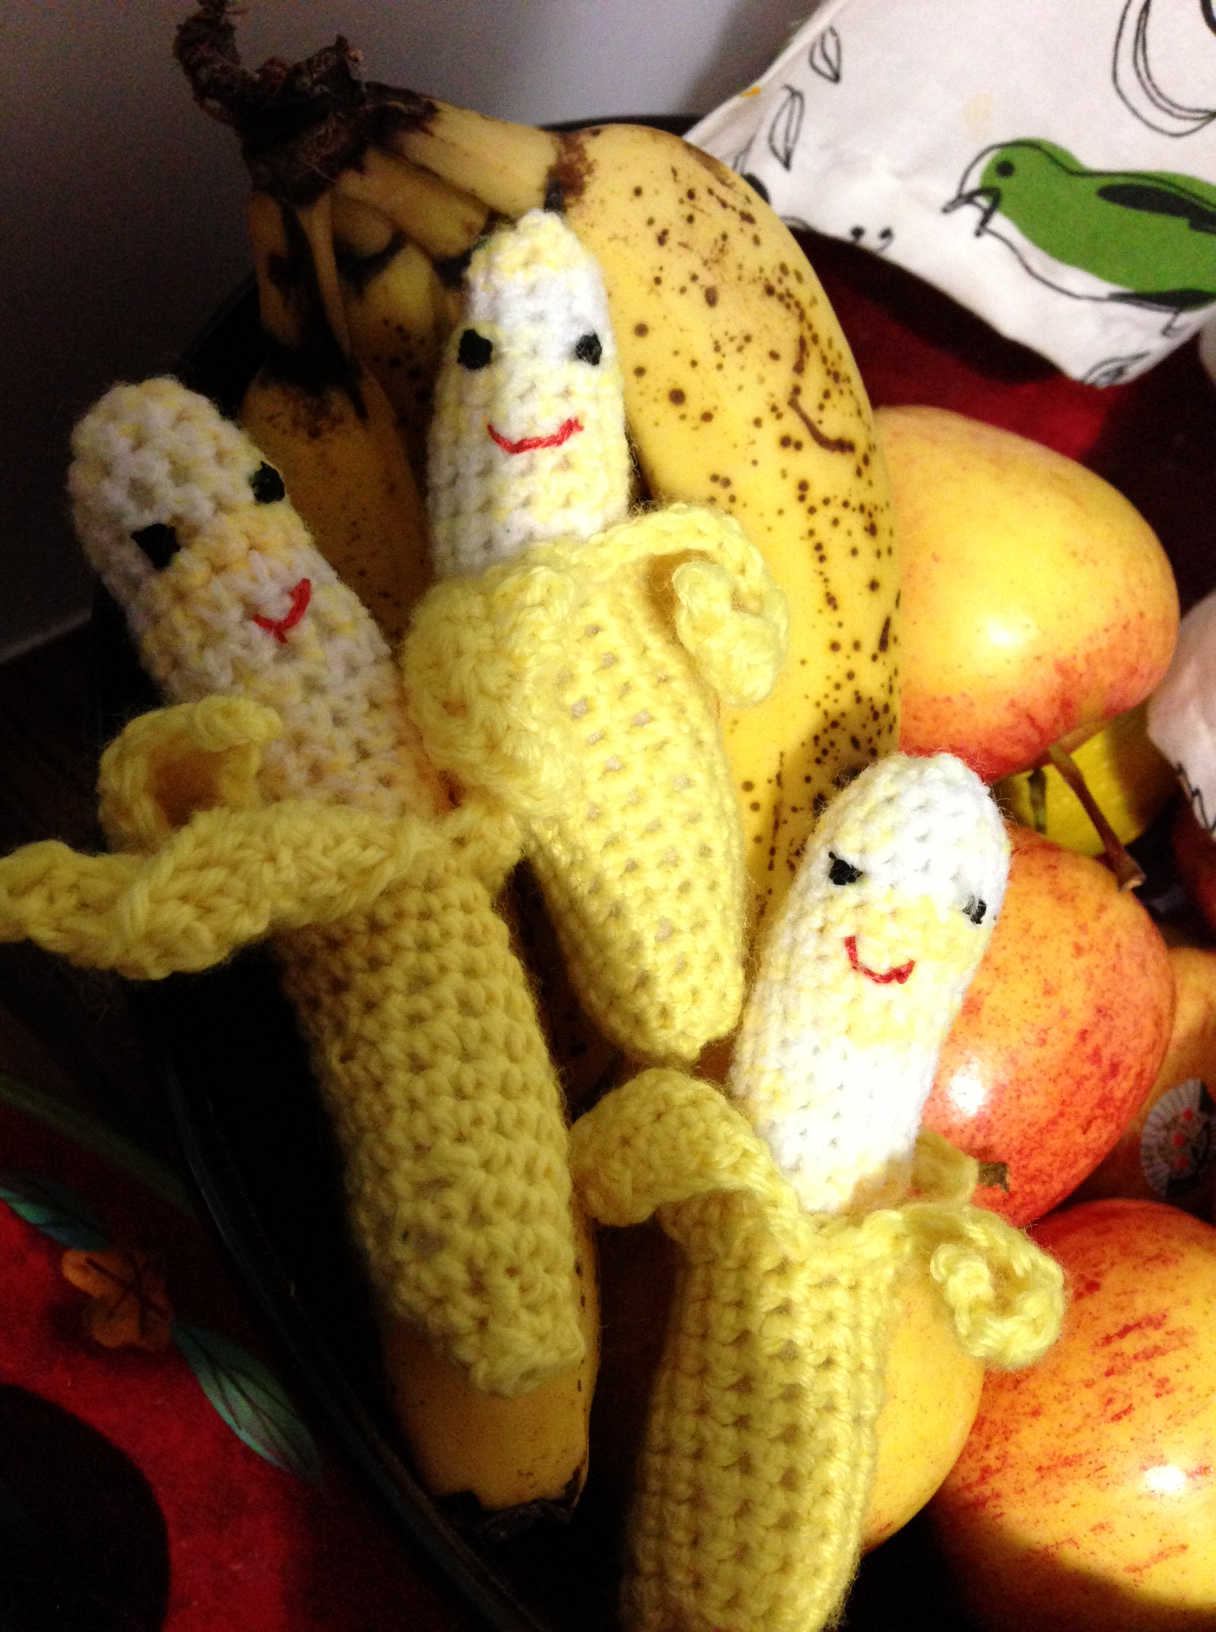 Just some cheeky bananas I made for a friend's son's birthday